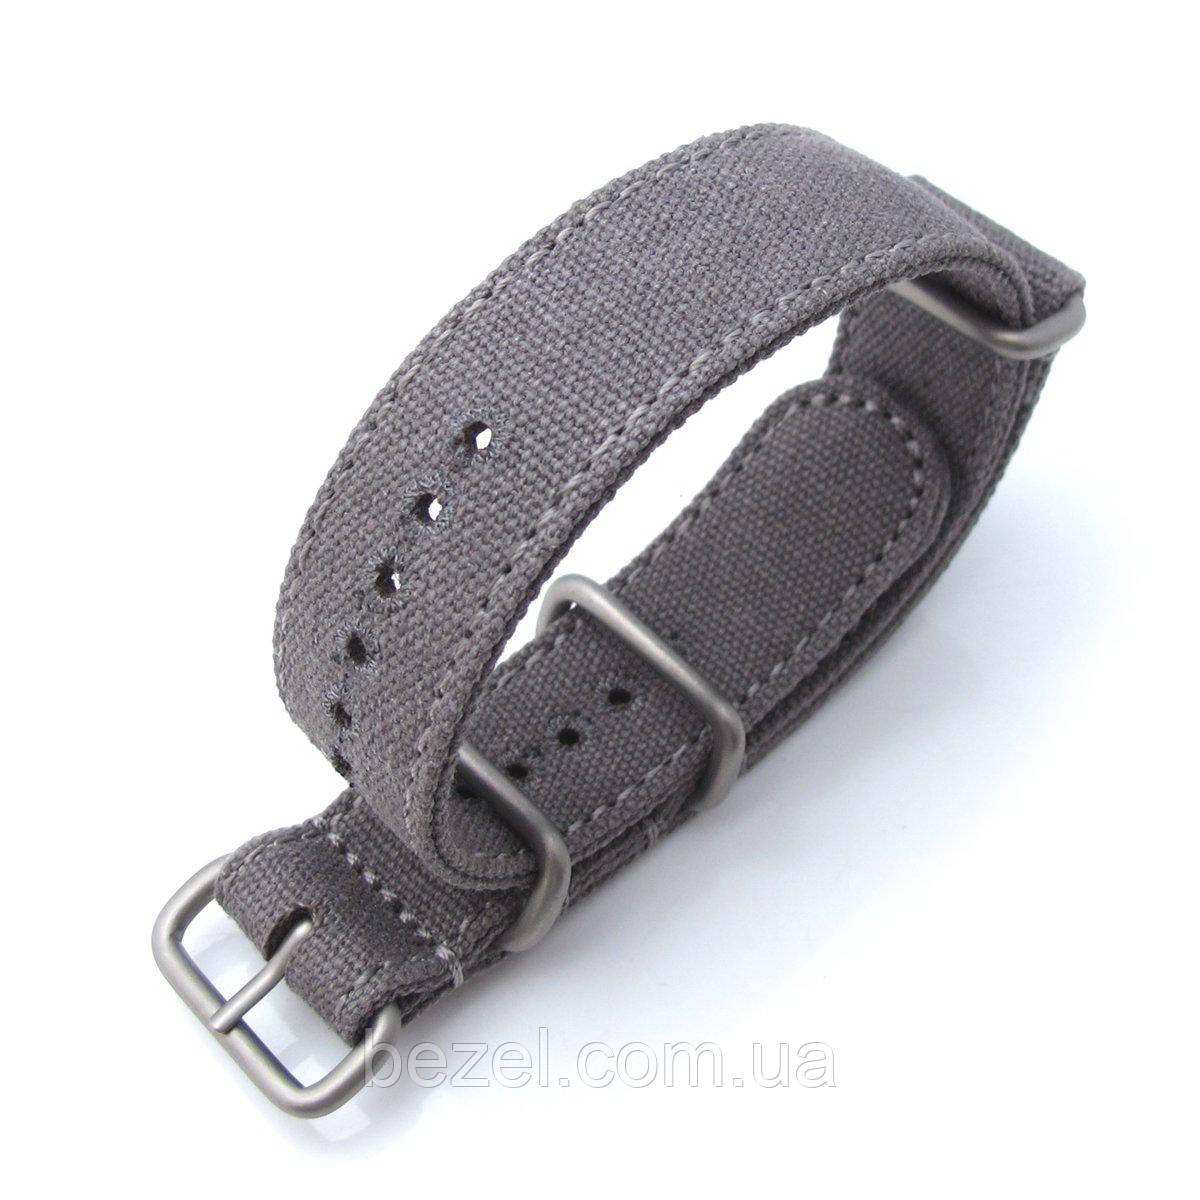 MiLTAT 20mm or 22mm Washed Canvas Zulu Military Grey Double Thickness Watch Strap, Lockstitch Round Hole